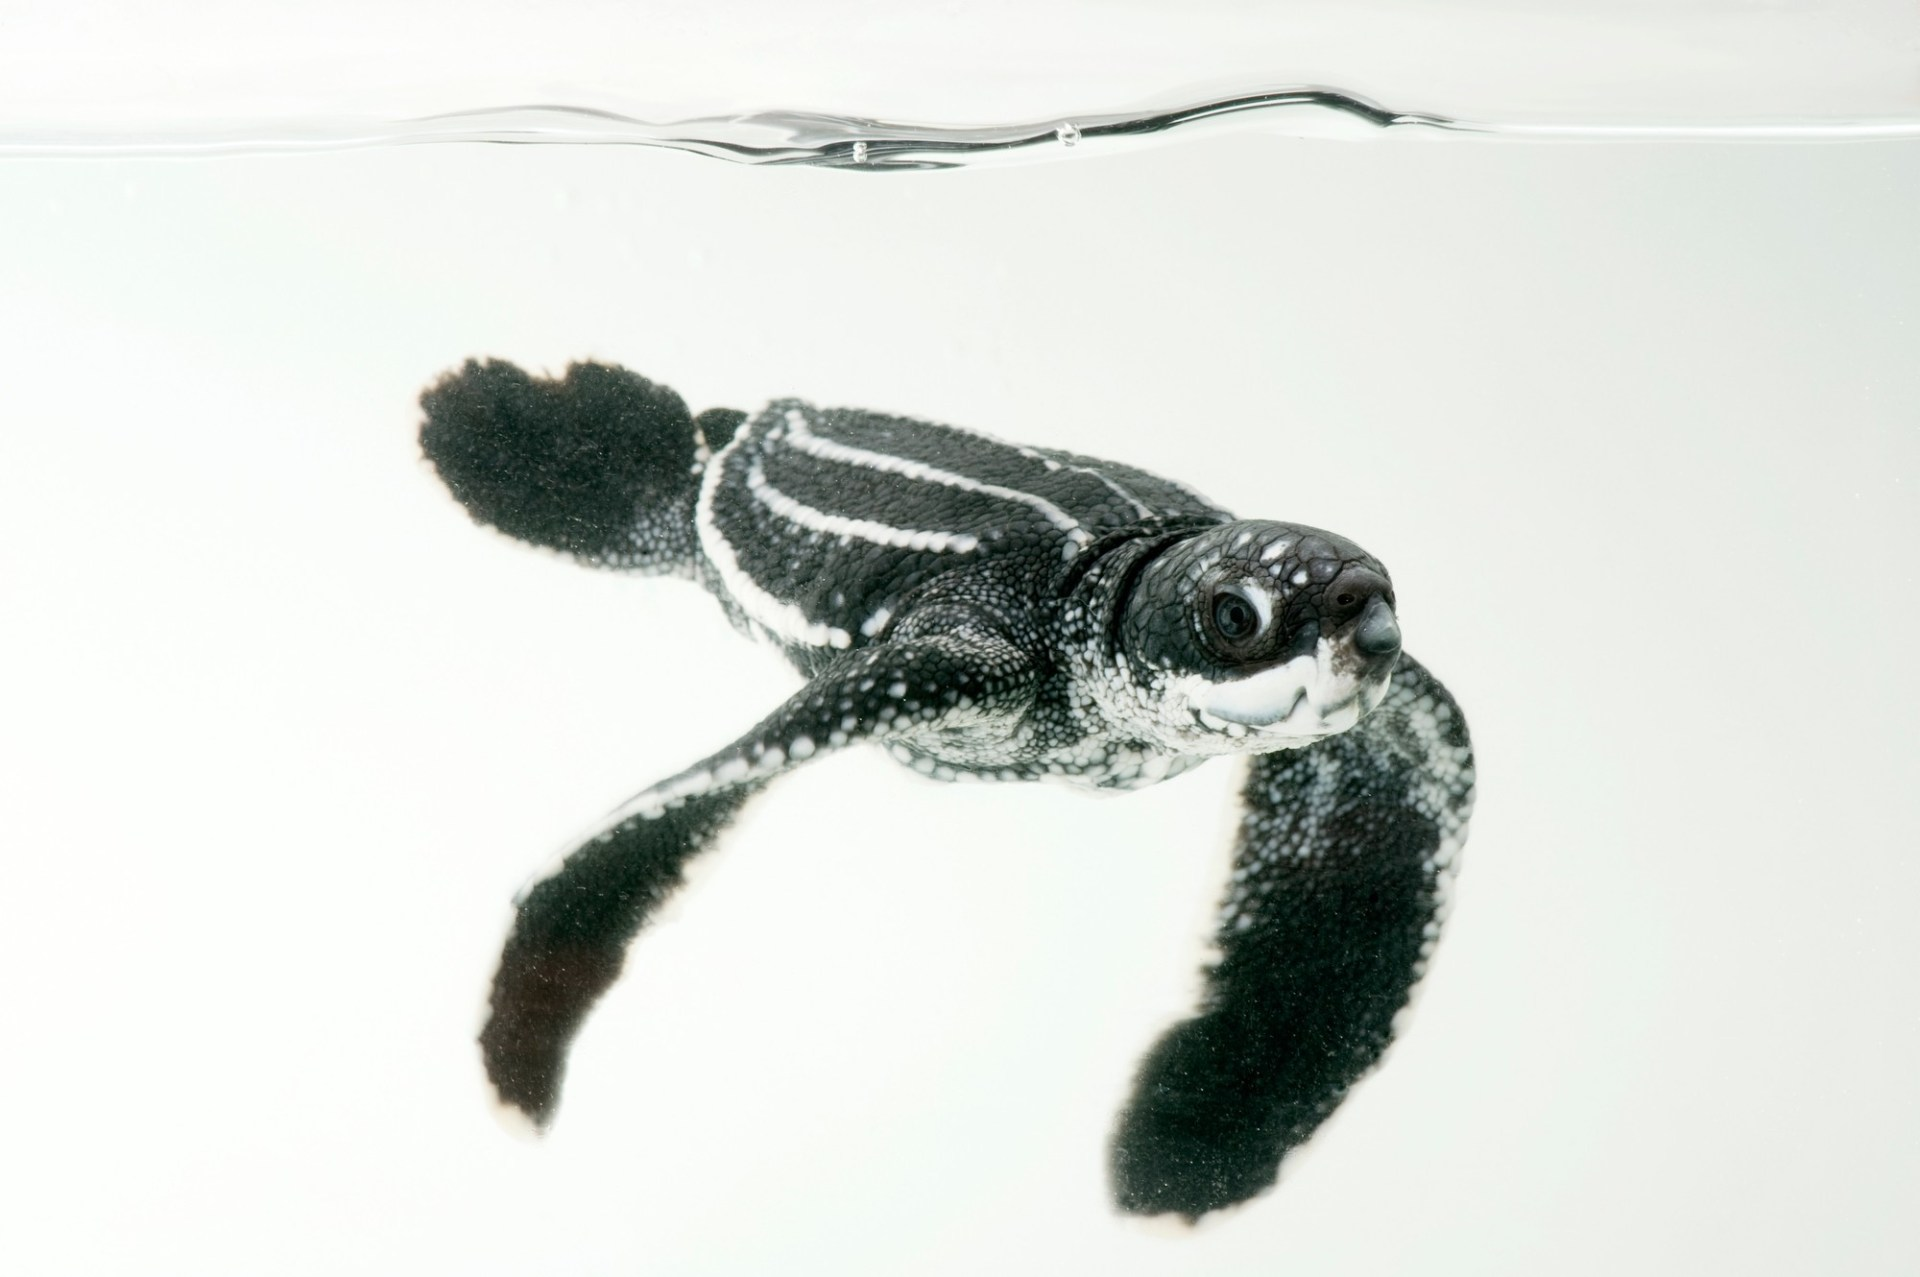 A half-day-old hatchling leatherback turtle (Dermochelys coriacea) from the wild in Bioko. This species is listed as critically endangered by IUCN, and federally endangered (US).